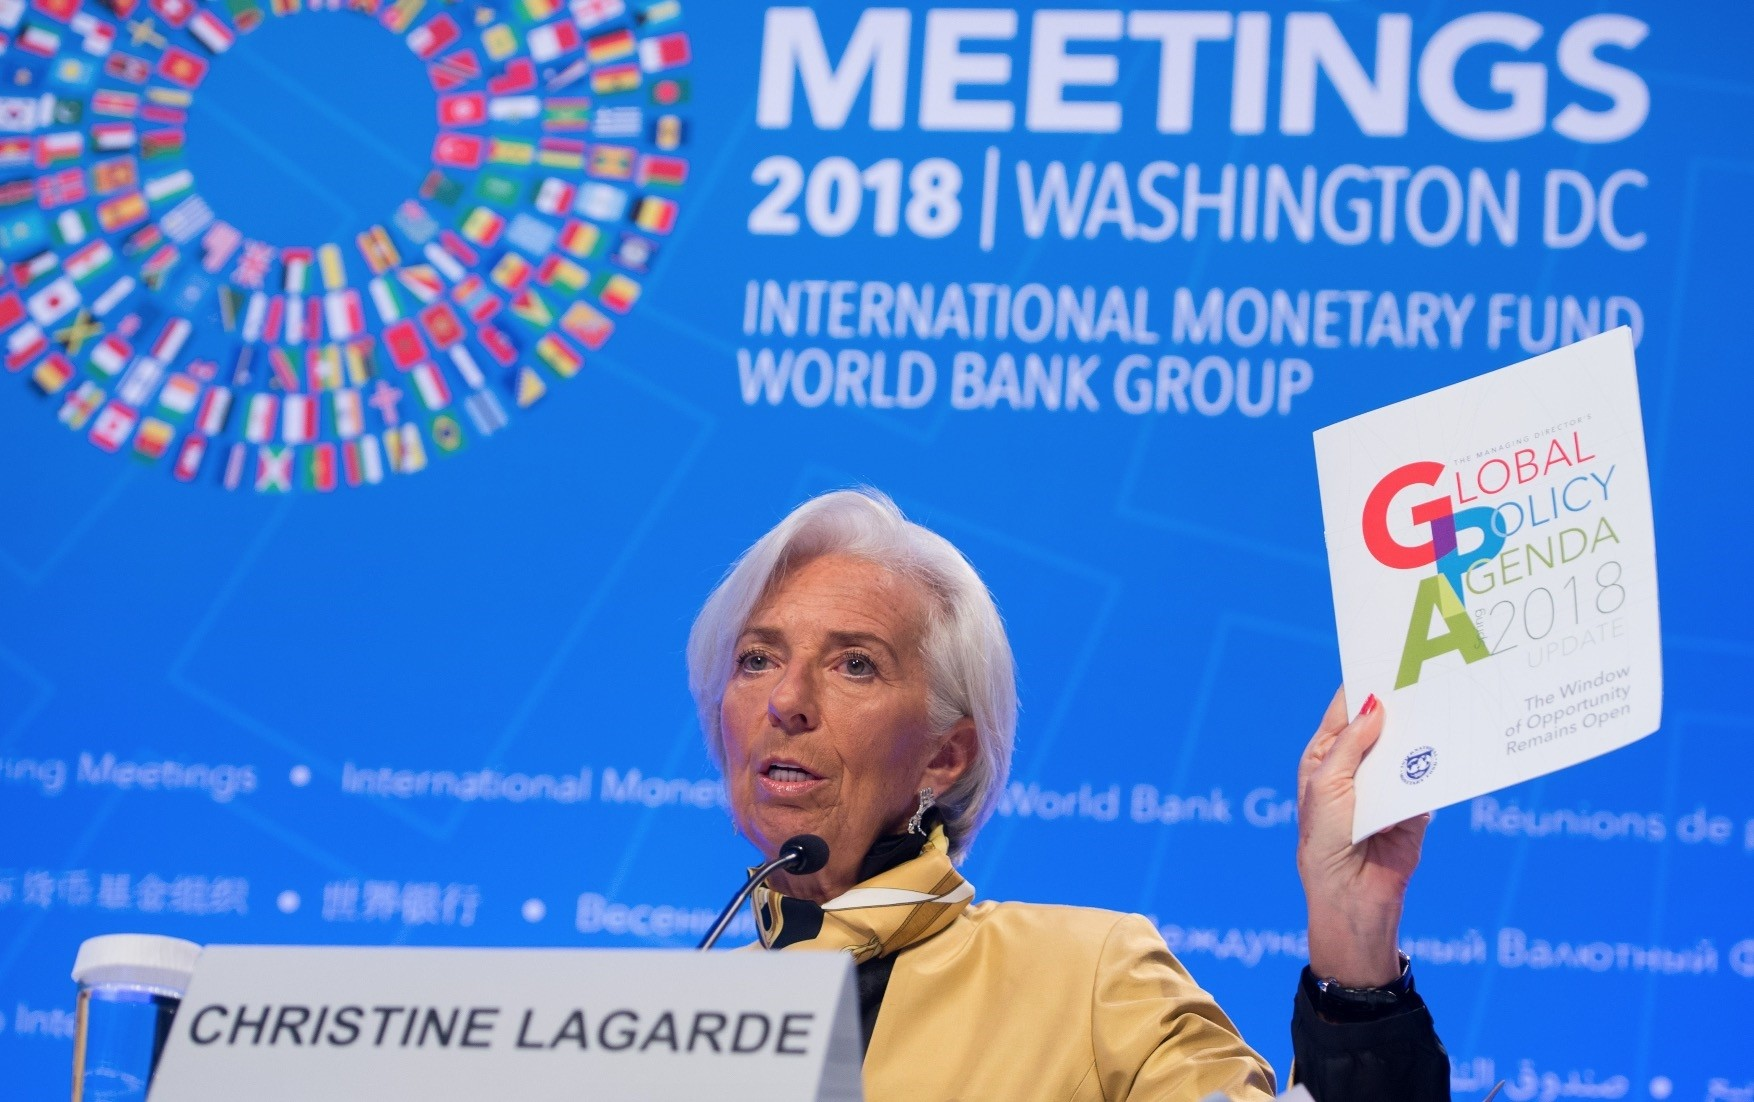 IMF Managing Director Christine Lagarde holds up a copy of the Global Policy Agenda as she holds a press conference during the 2018 Spring Meetings of the International Monetary Fund and World Bank Group at IMF Headquarters in Washington.